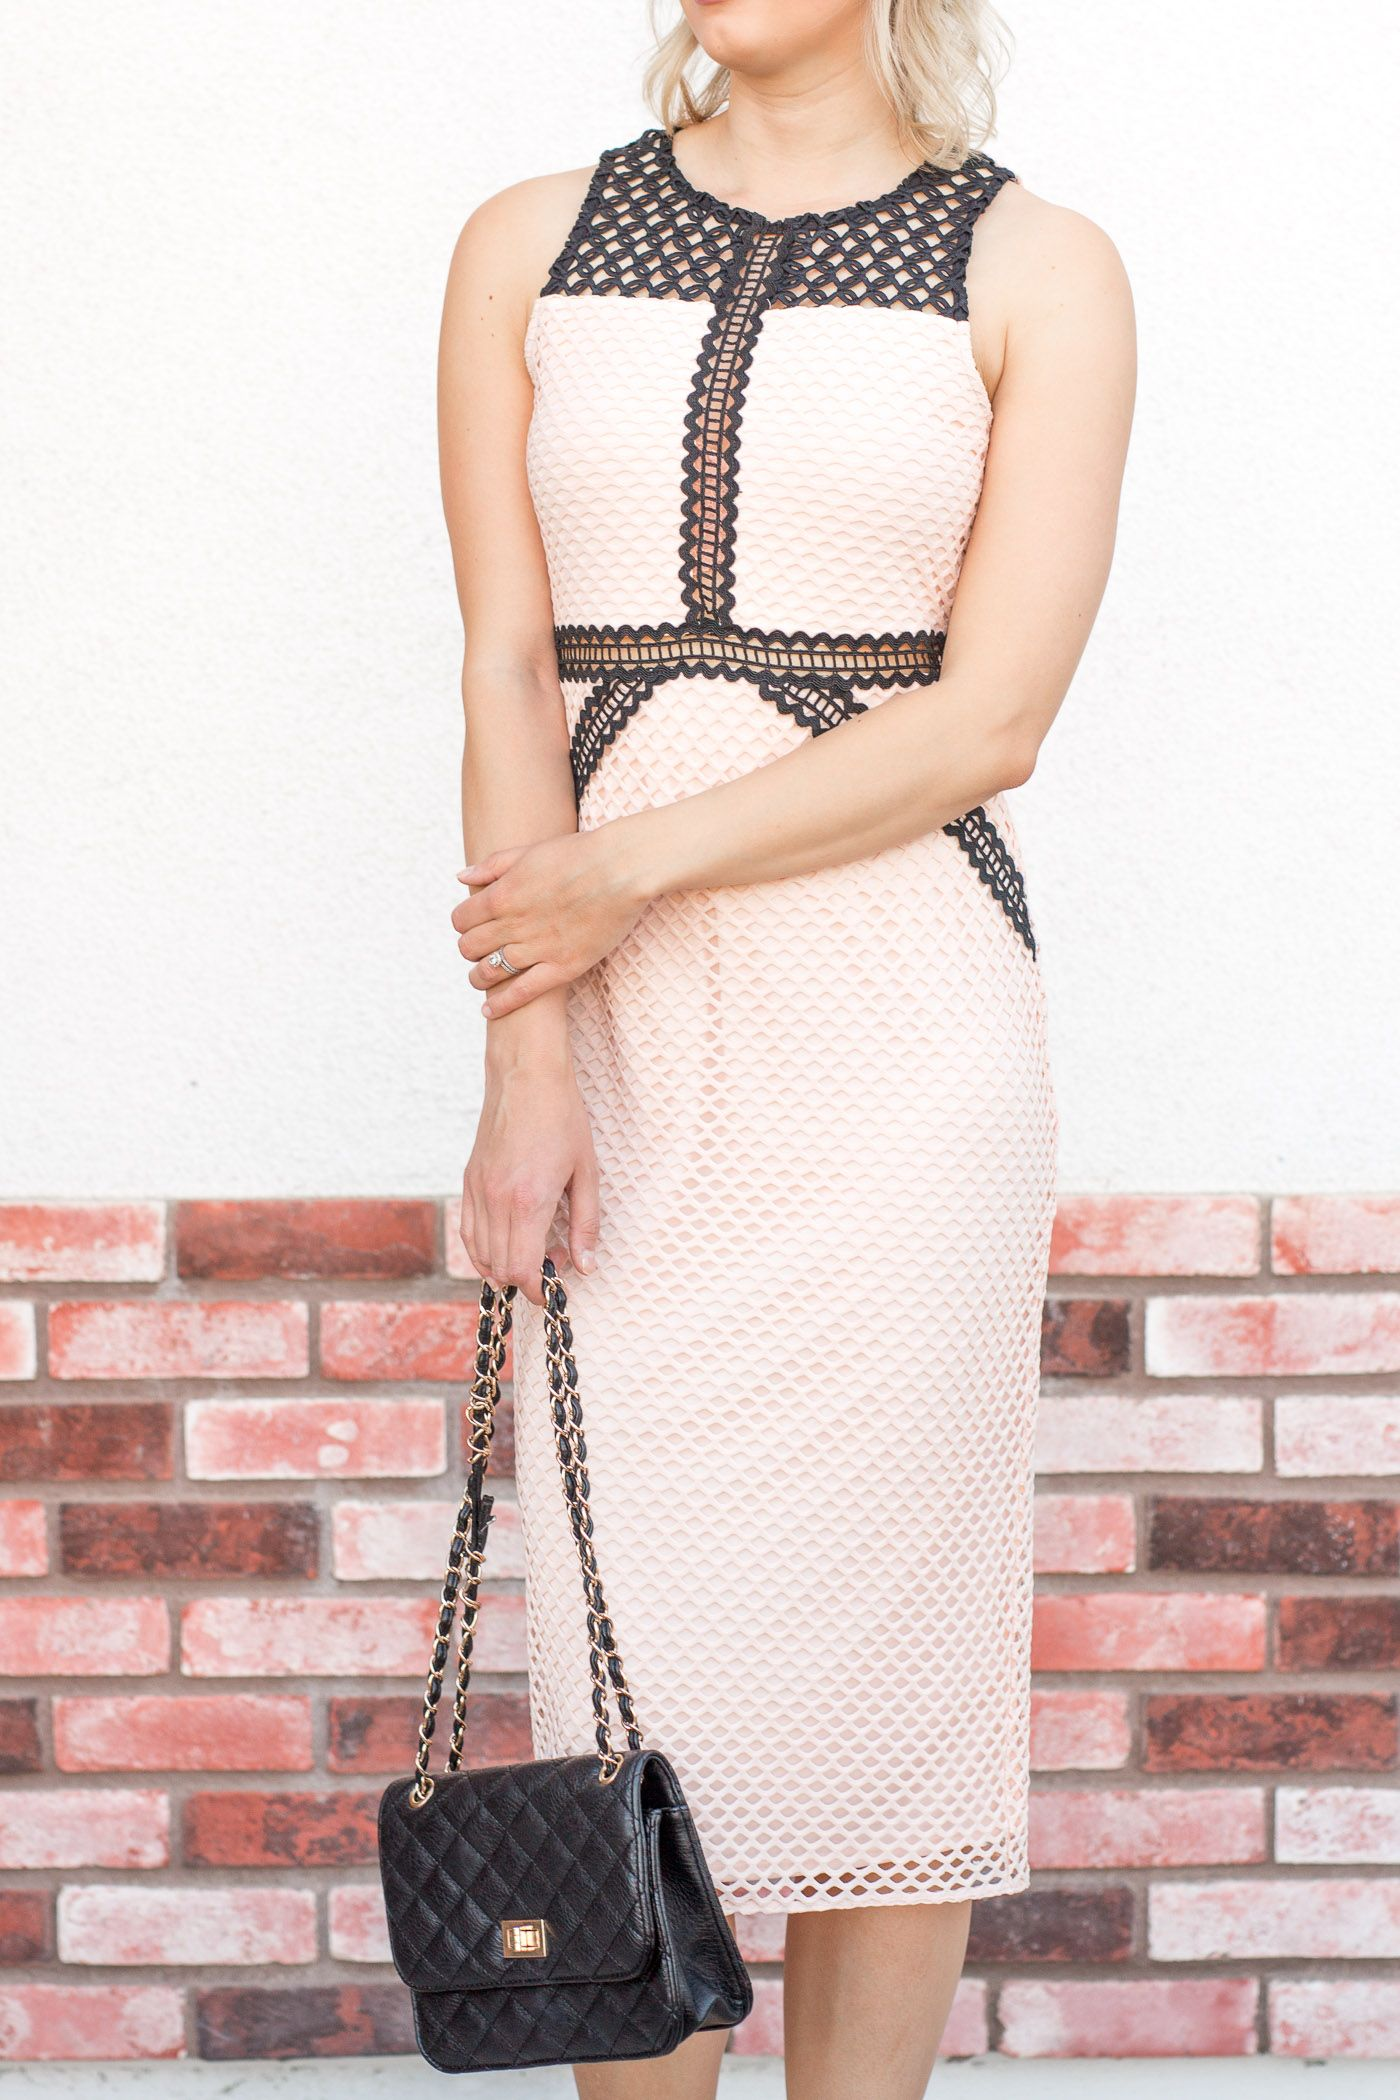 The Perfect Wedding Guest Dress   Wedding guest dresses, Perfect ...